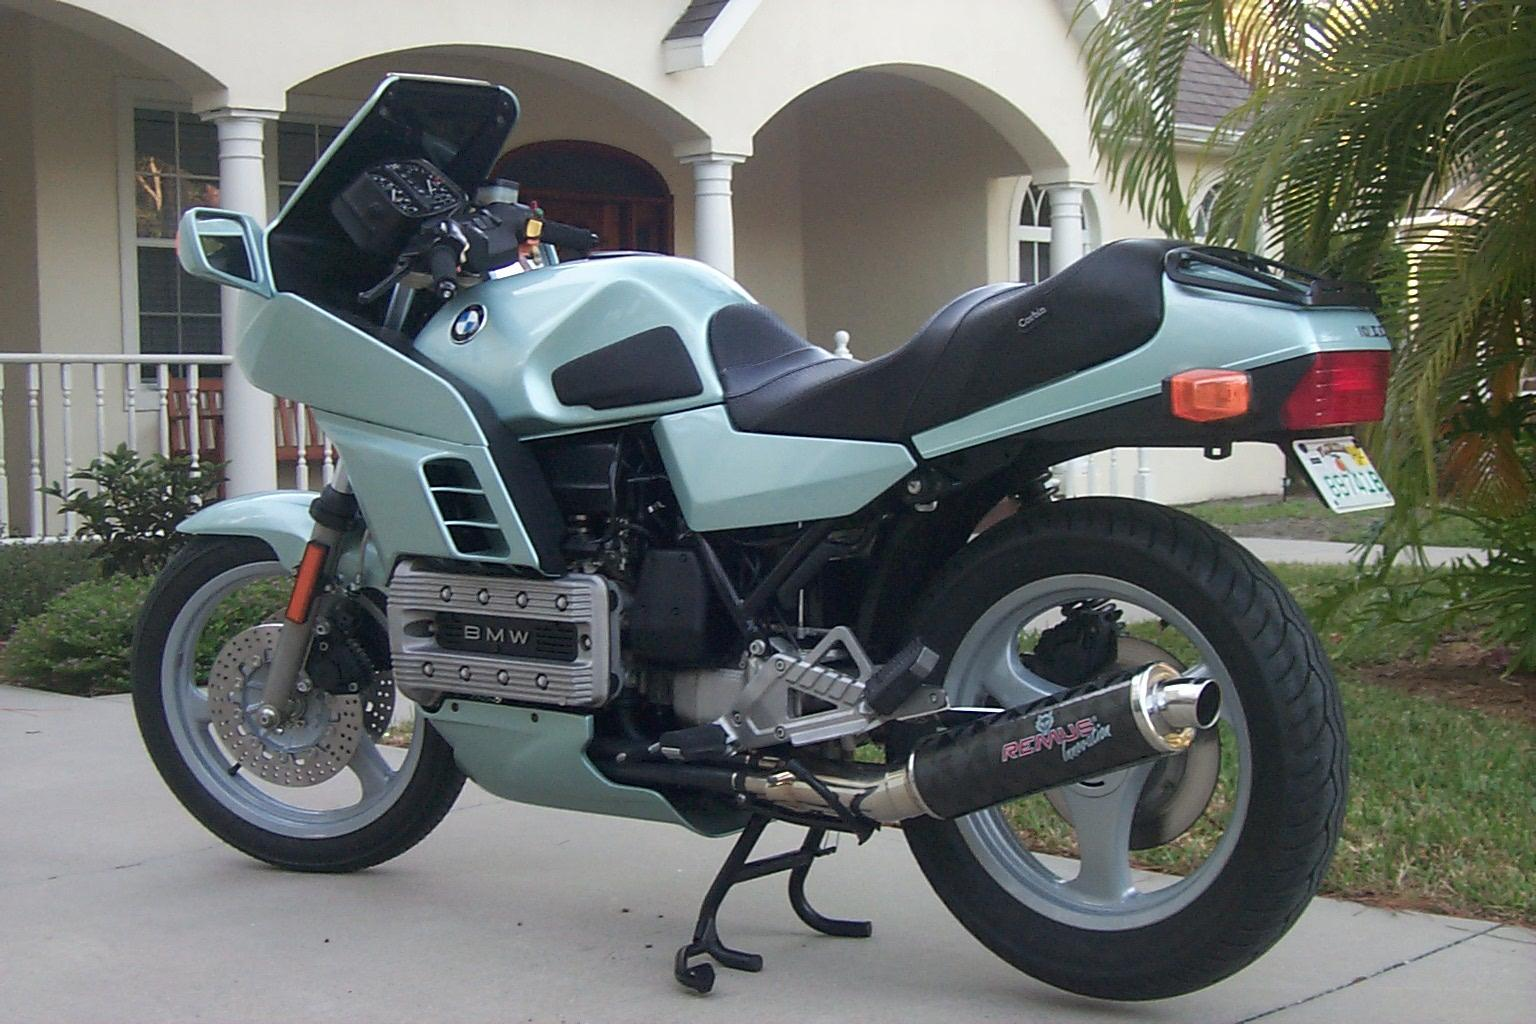 BMW K100RS 1985 images #4558